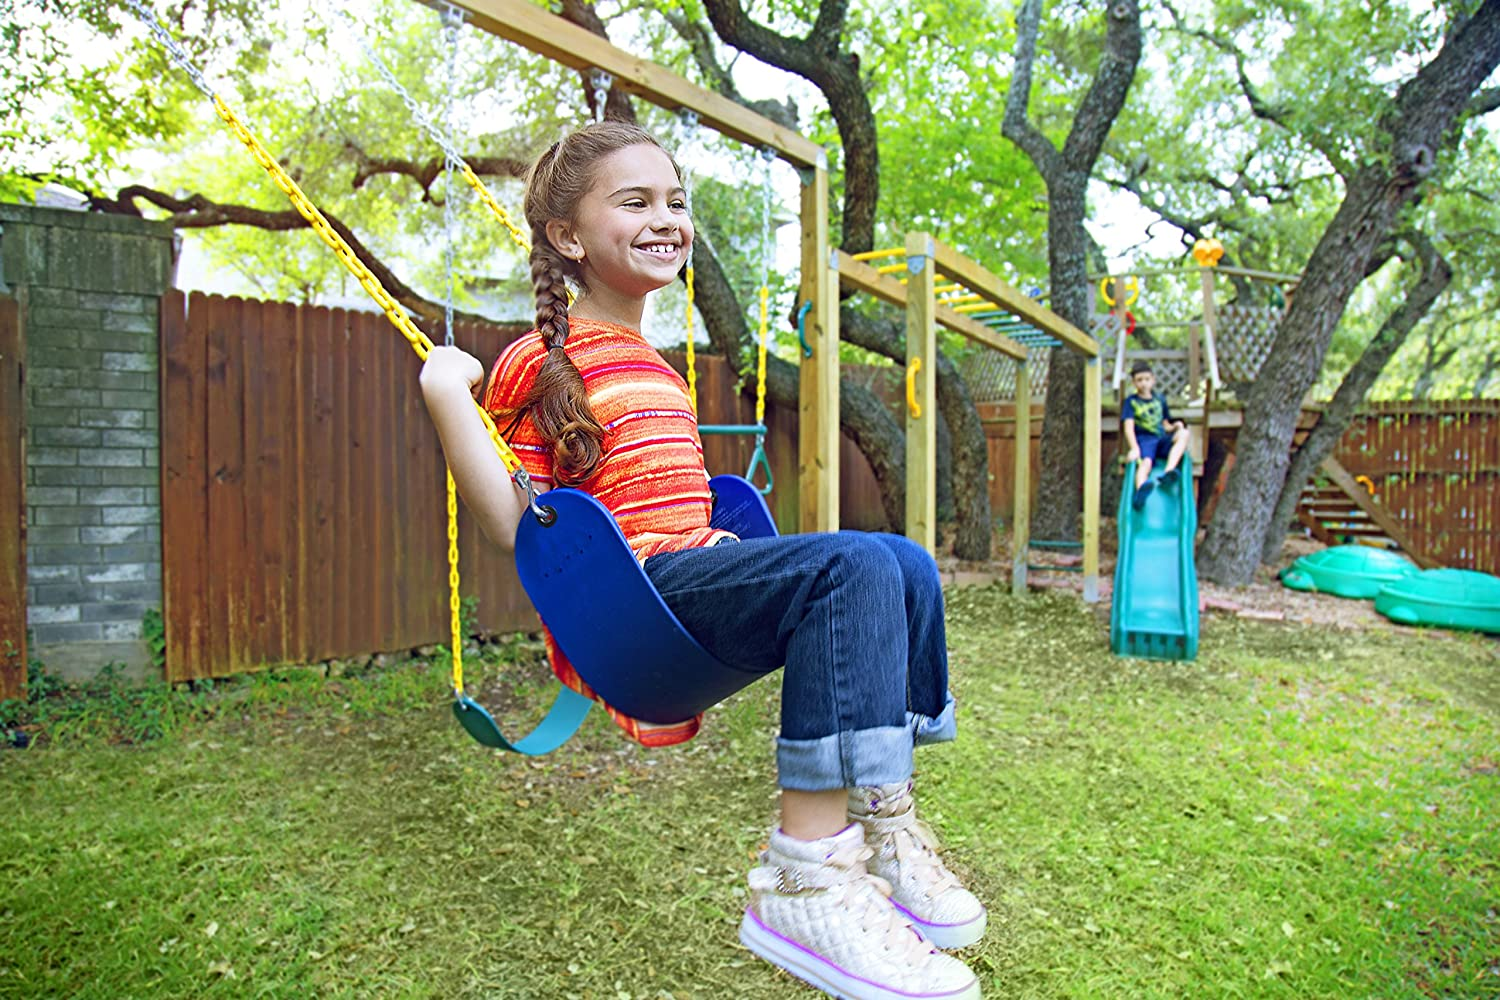 Playground Backyard Kids Swing Set Accessories Outdoor Replacement with Snap Hooks ORANGUTAN Heavy Duty Swing Seat 66 Chain Plastic Coated Swings for Kids Adults Pink